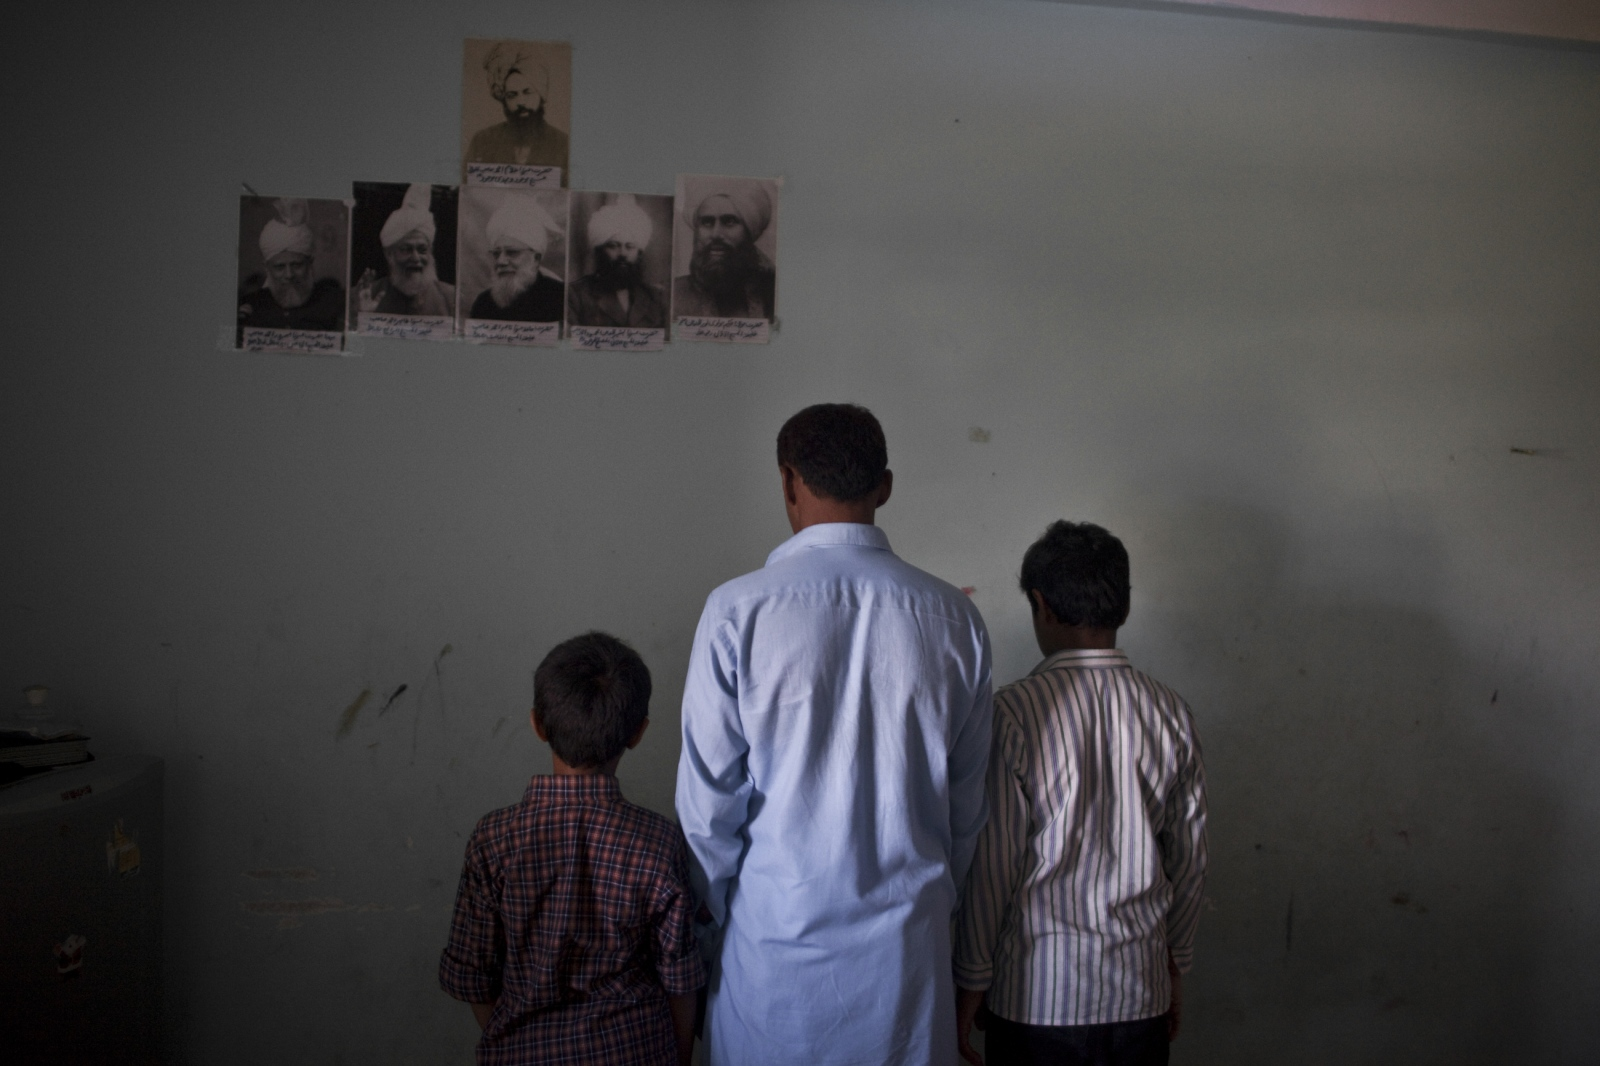 A father and his two sons from Islamabad, Pakistan, seeking asylum on the outskirts of Bangkok, practice their faith inside their one room apartment. They are Ahmadi Muslims, a religious minority, who is often targeted and discriminated against by other Muslims in Pakistan. Apr. 2015